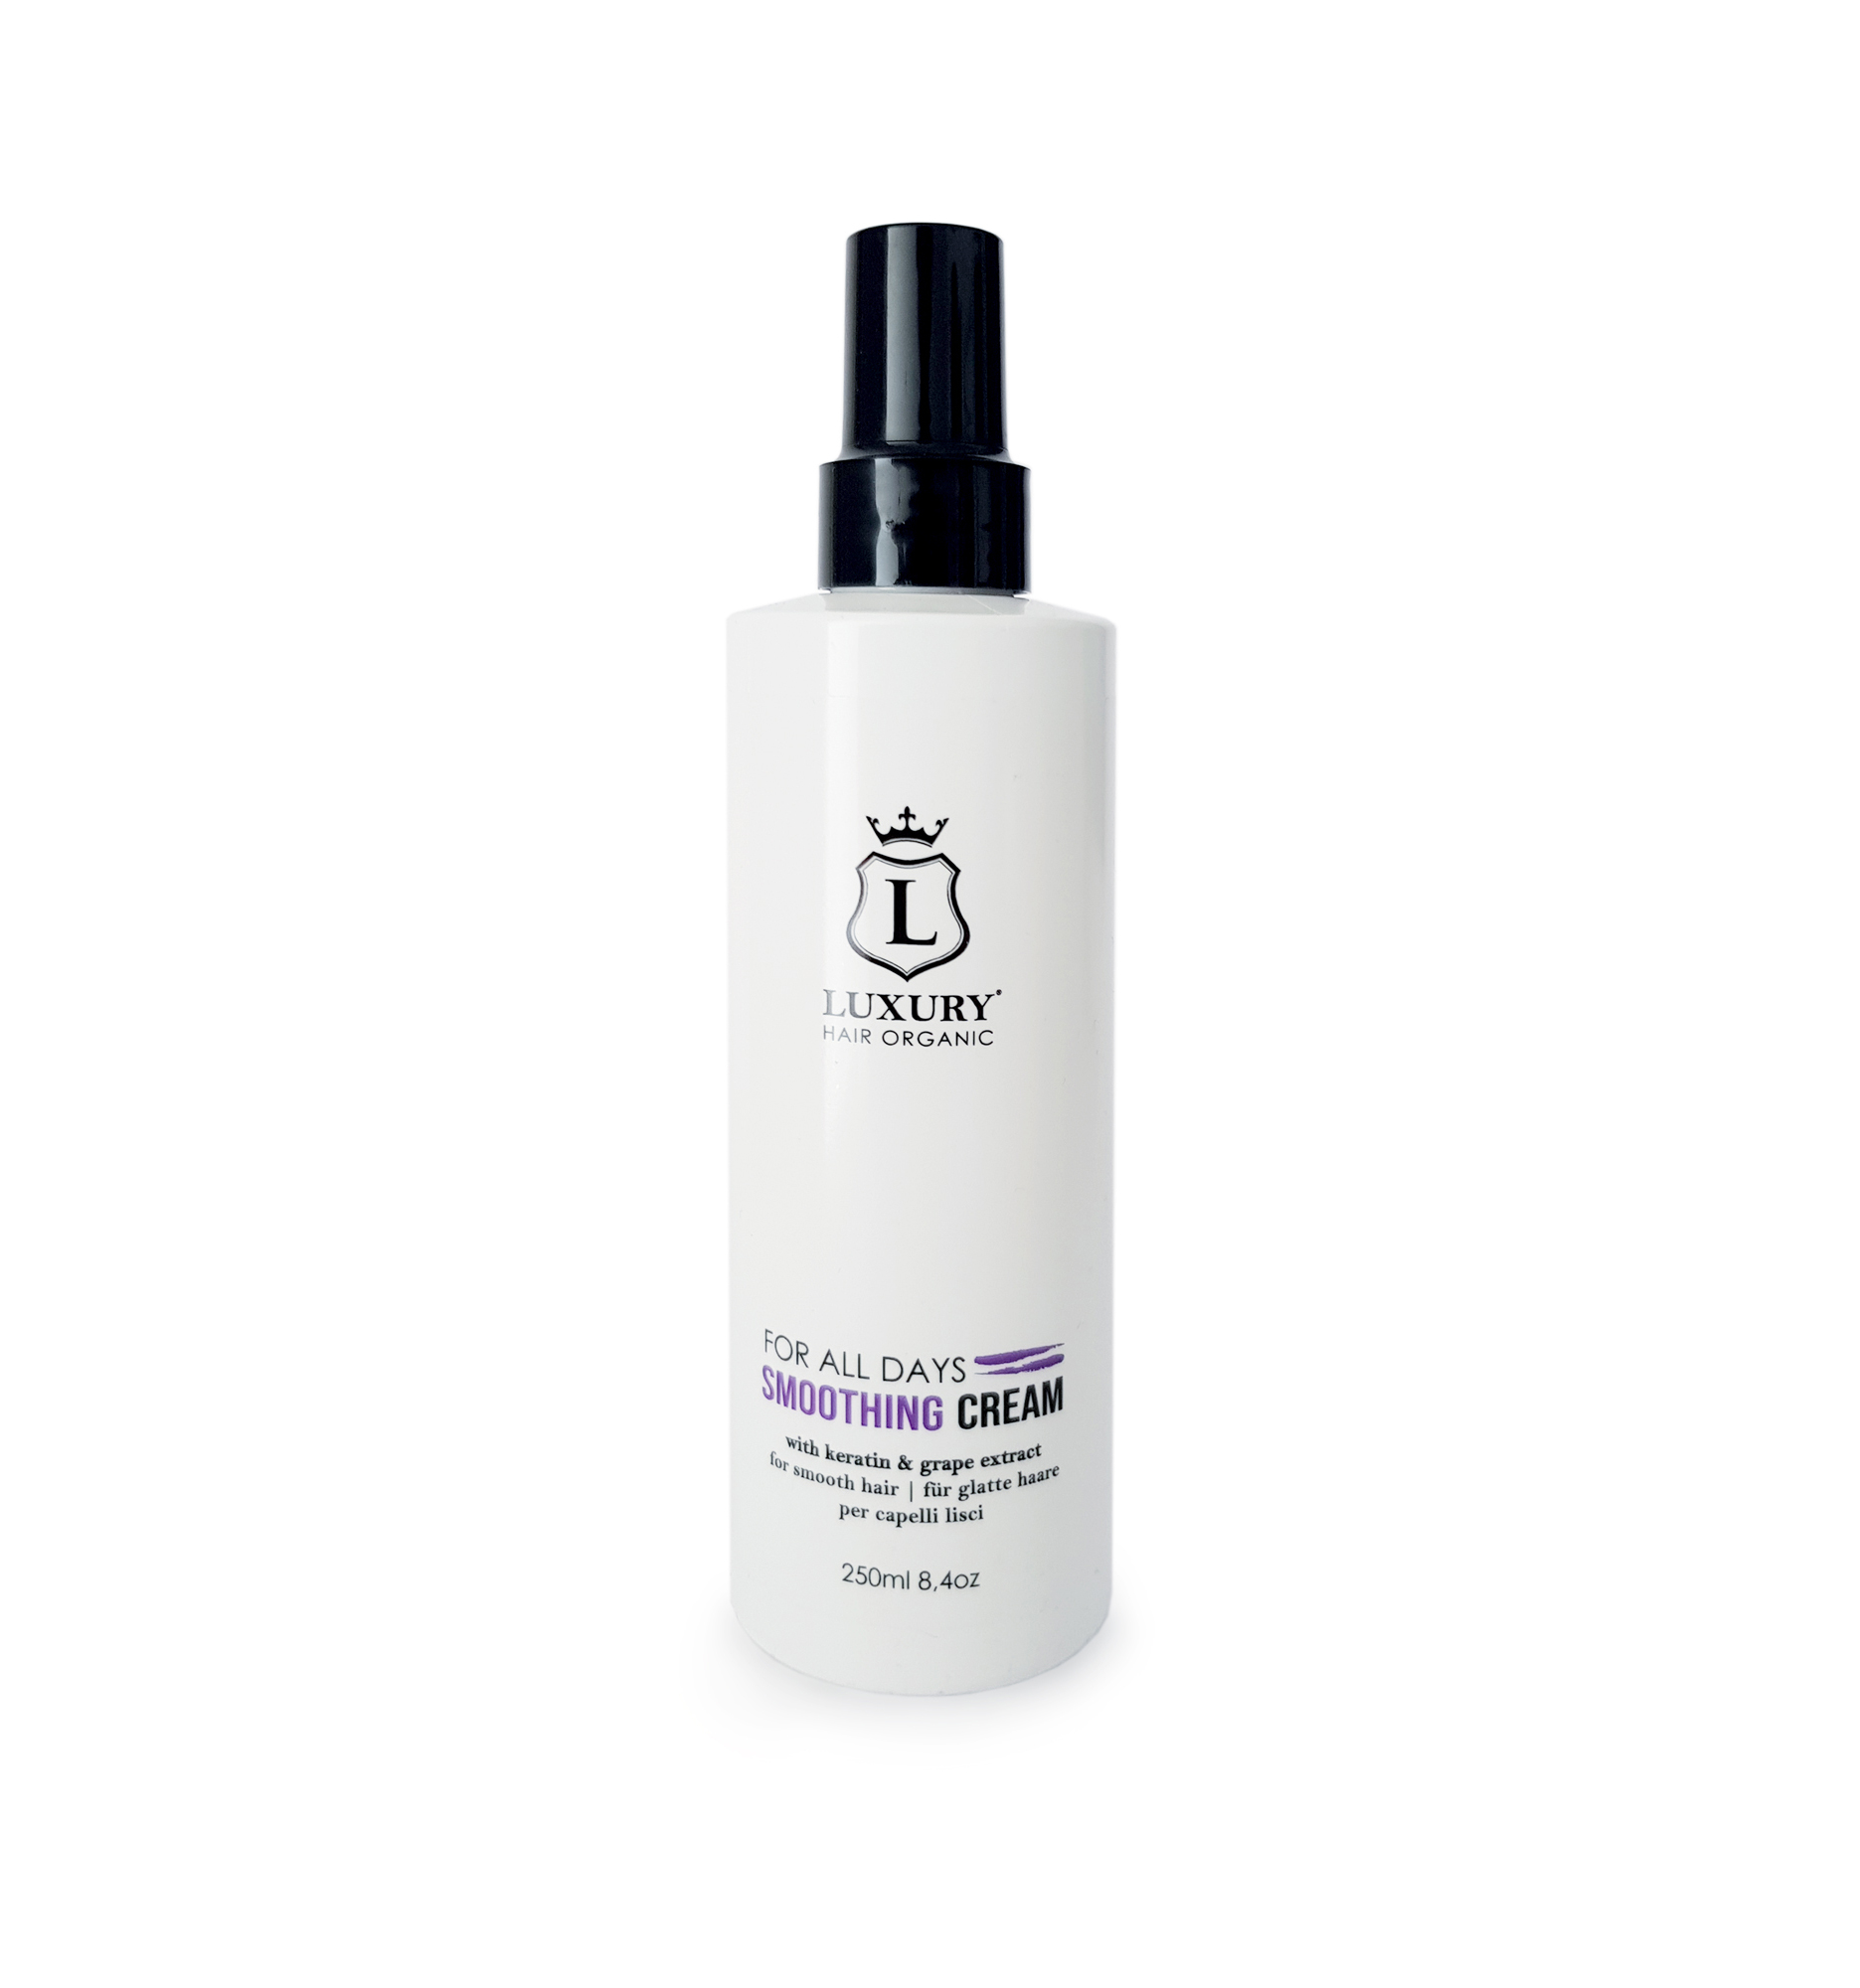 LUXURY-HAIR-ORGANIC-Smoothing-Cream-with-Keratin-&-Grape-extract-No-Rinse-250-ml-Flasche